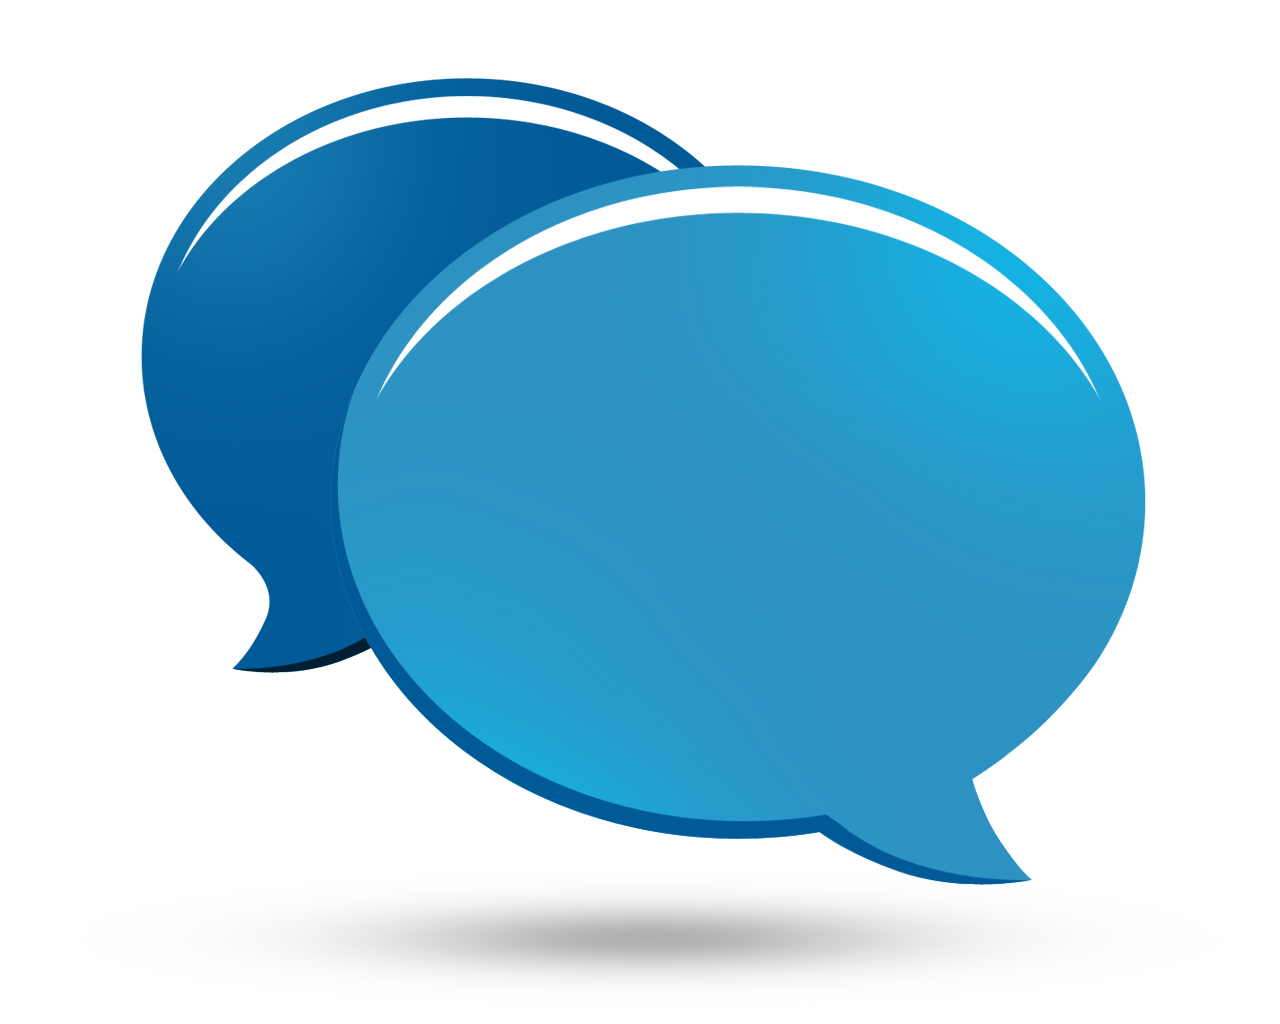 Chat Png Image Png Image - Chat, Transparent background PNG HD thumbnail